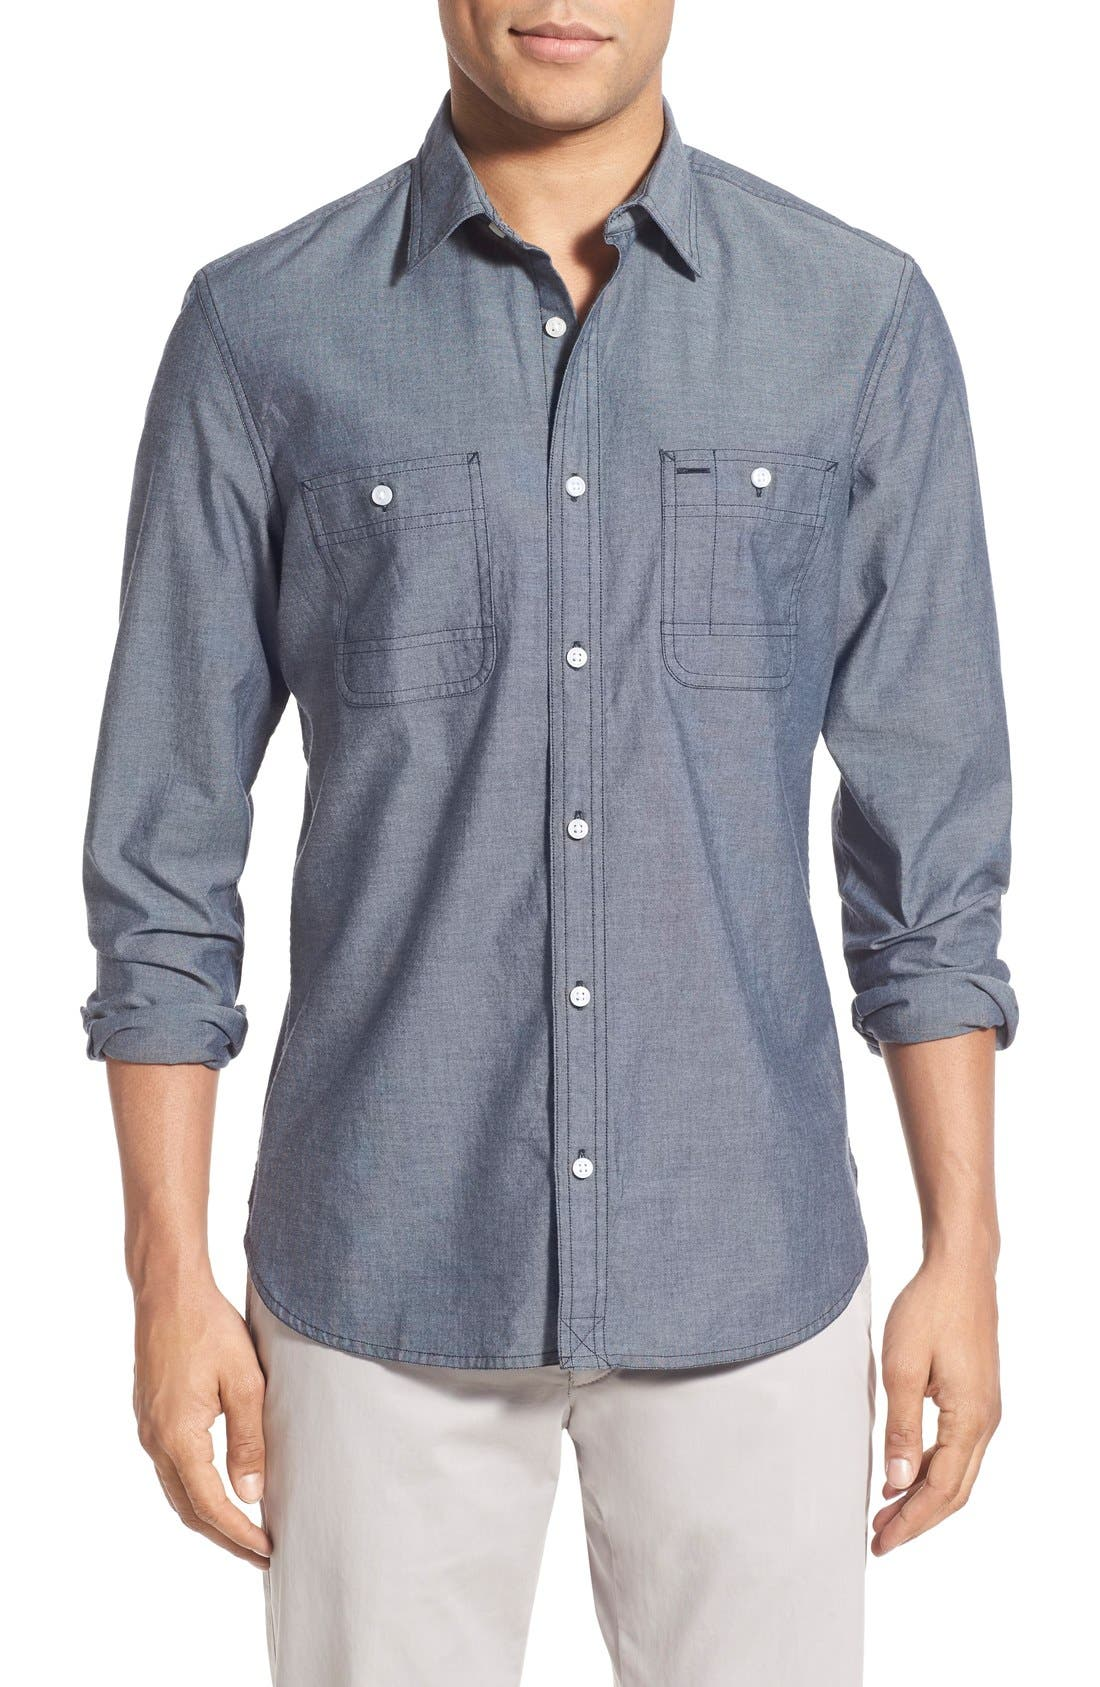 'Workwear' Trim Fit Chambray Sport Shirt,                         Main,                         color, Light Blue